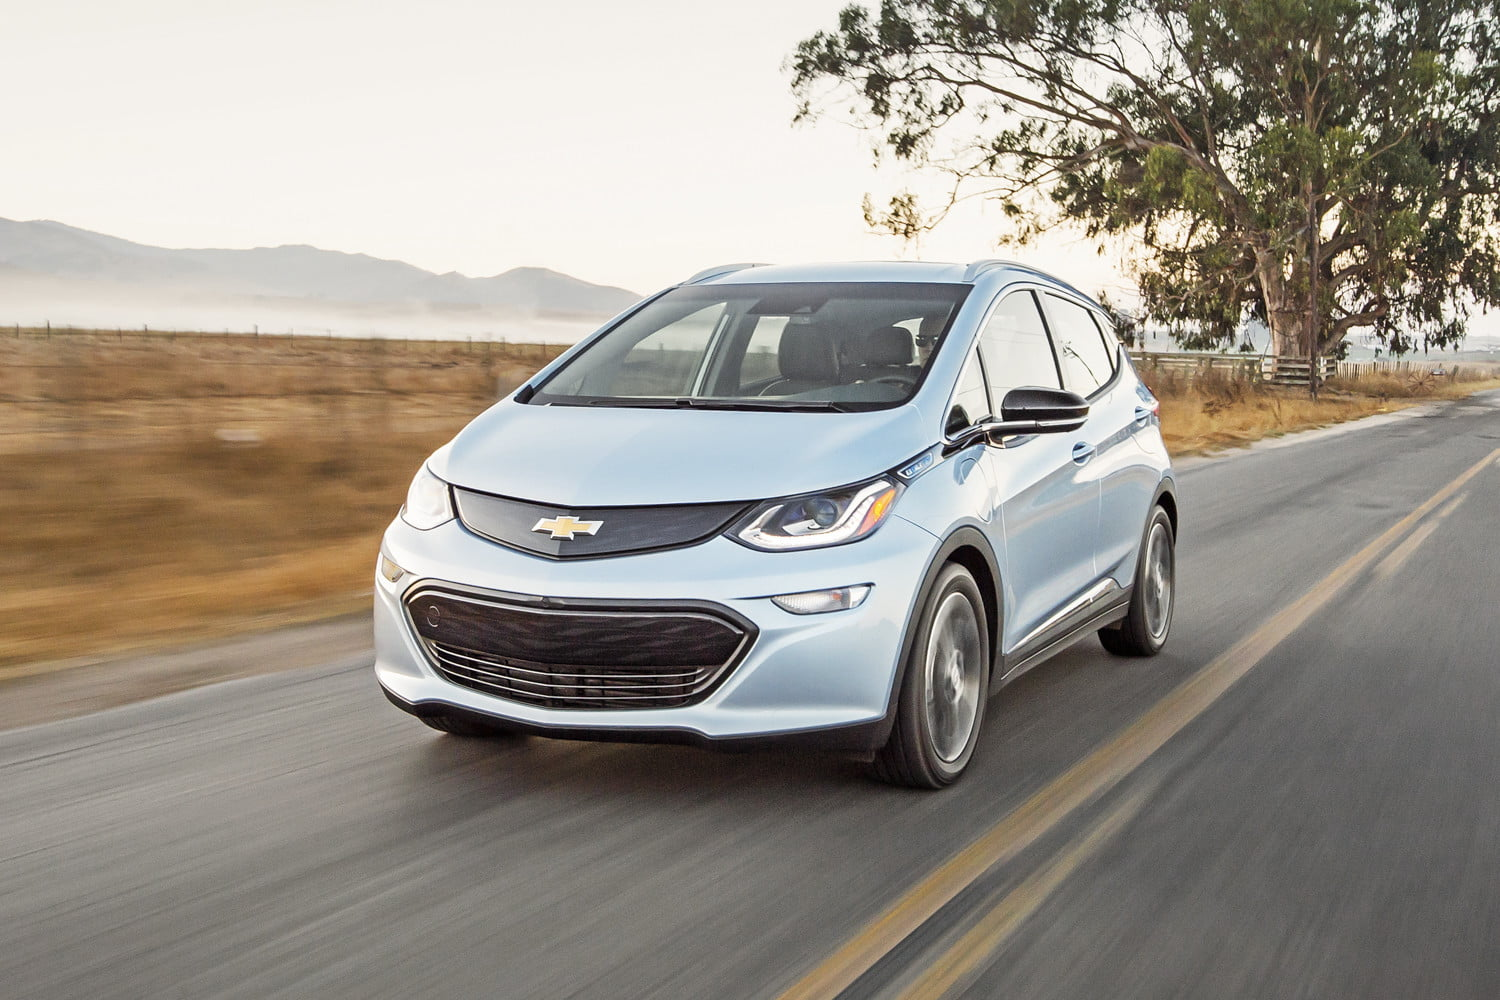 chevy bolt vs volt specs design price and more digital trends. Black Bedroom Furniture Sets. Home Design Ideas